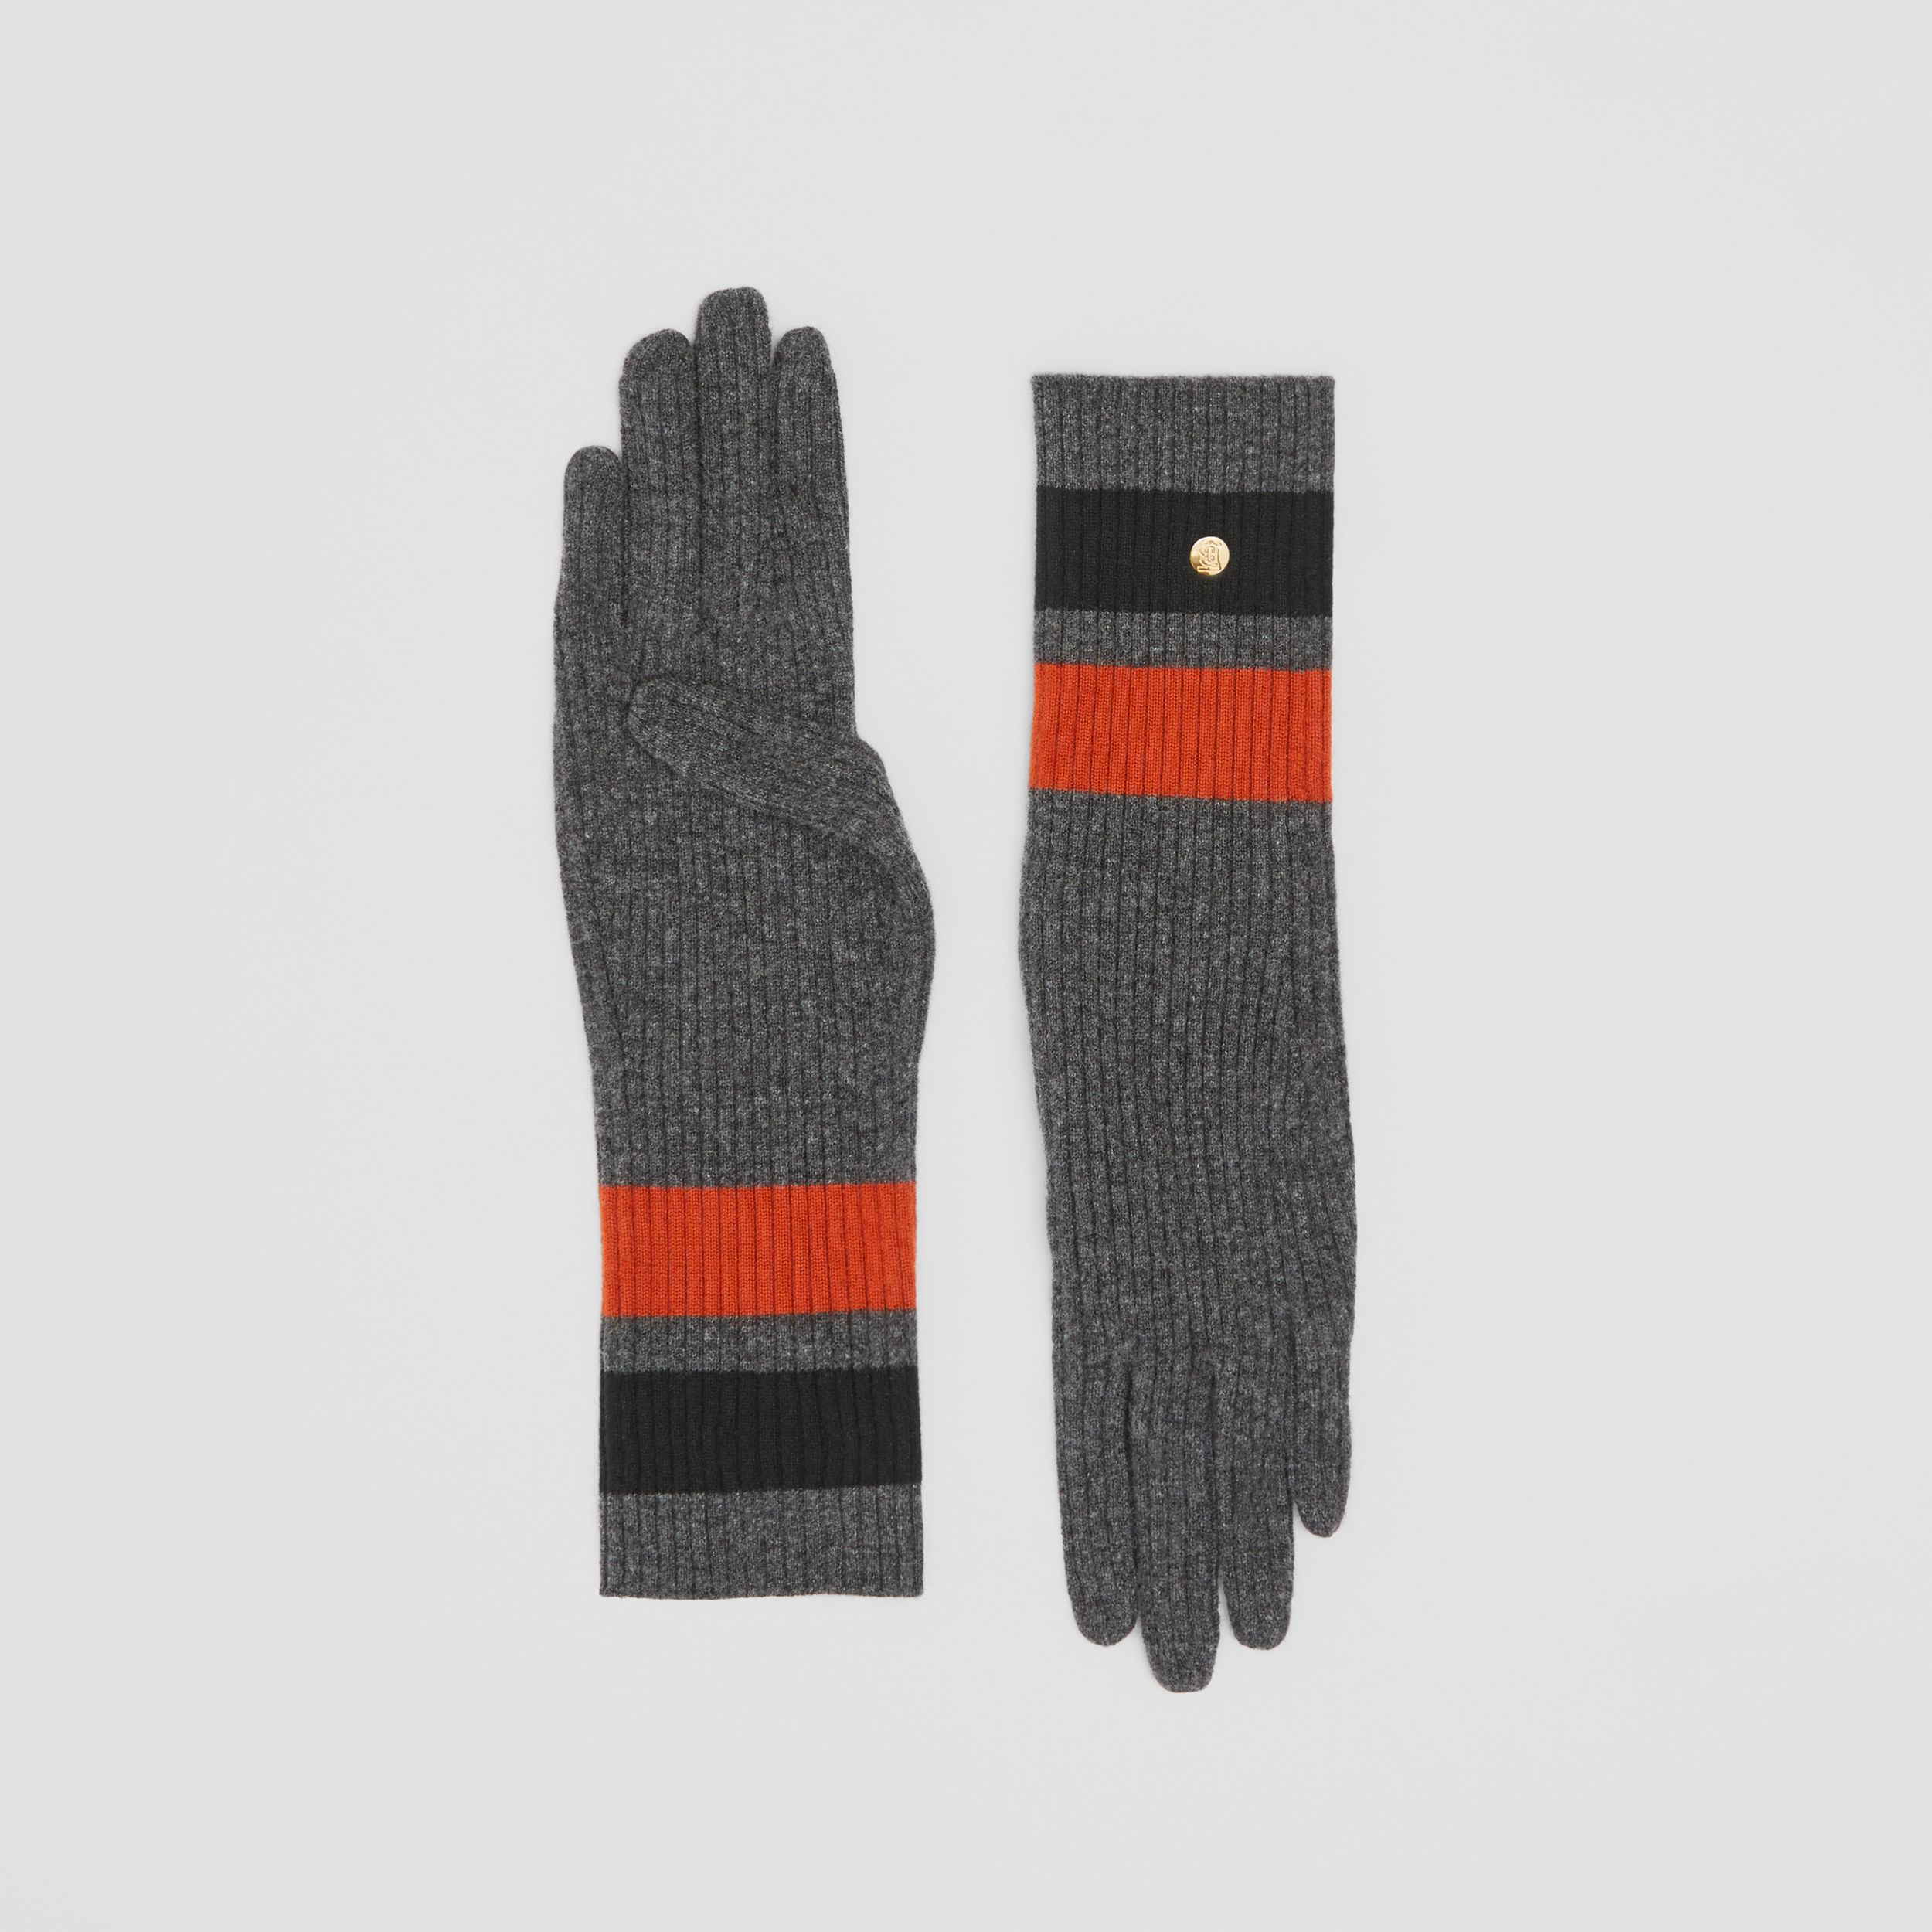 Monogram Motif Merino Wool Cashmere Gloves in Dark Grey | Burberry - 1